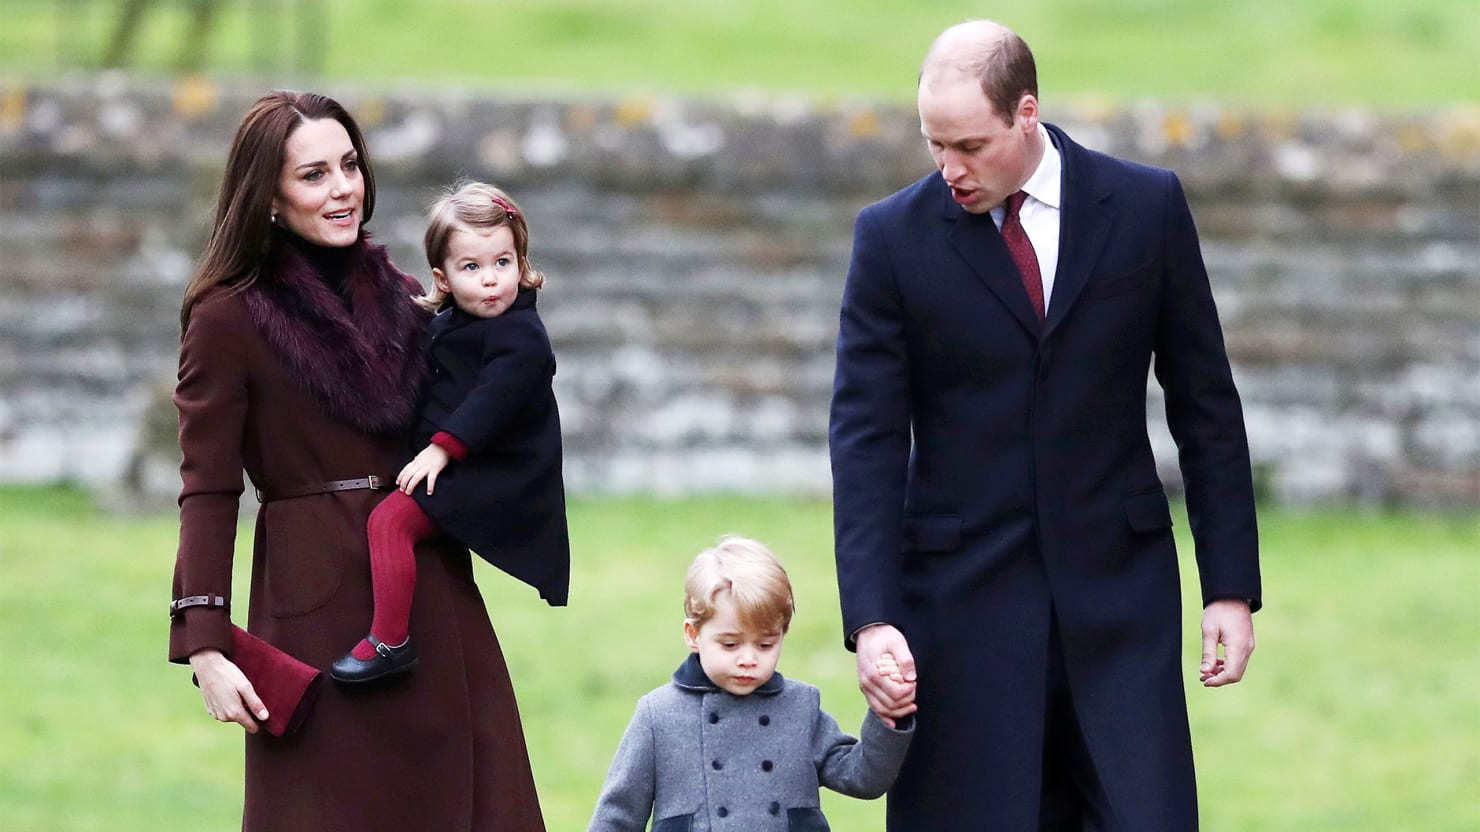 Its The End Of The Rural Life For Prince William And Kate Middleton As Royal Priorities Begin To Shift Ahead Of The Accession Of King Charles